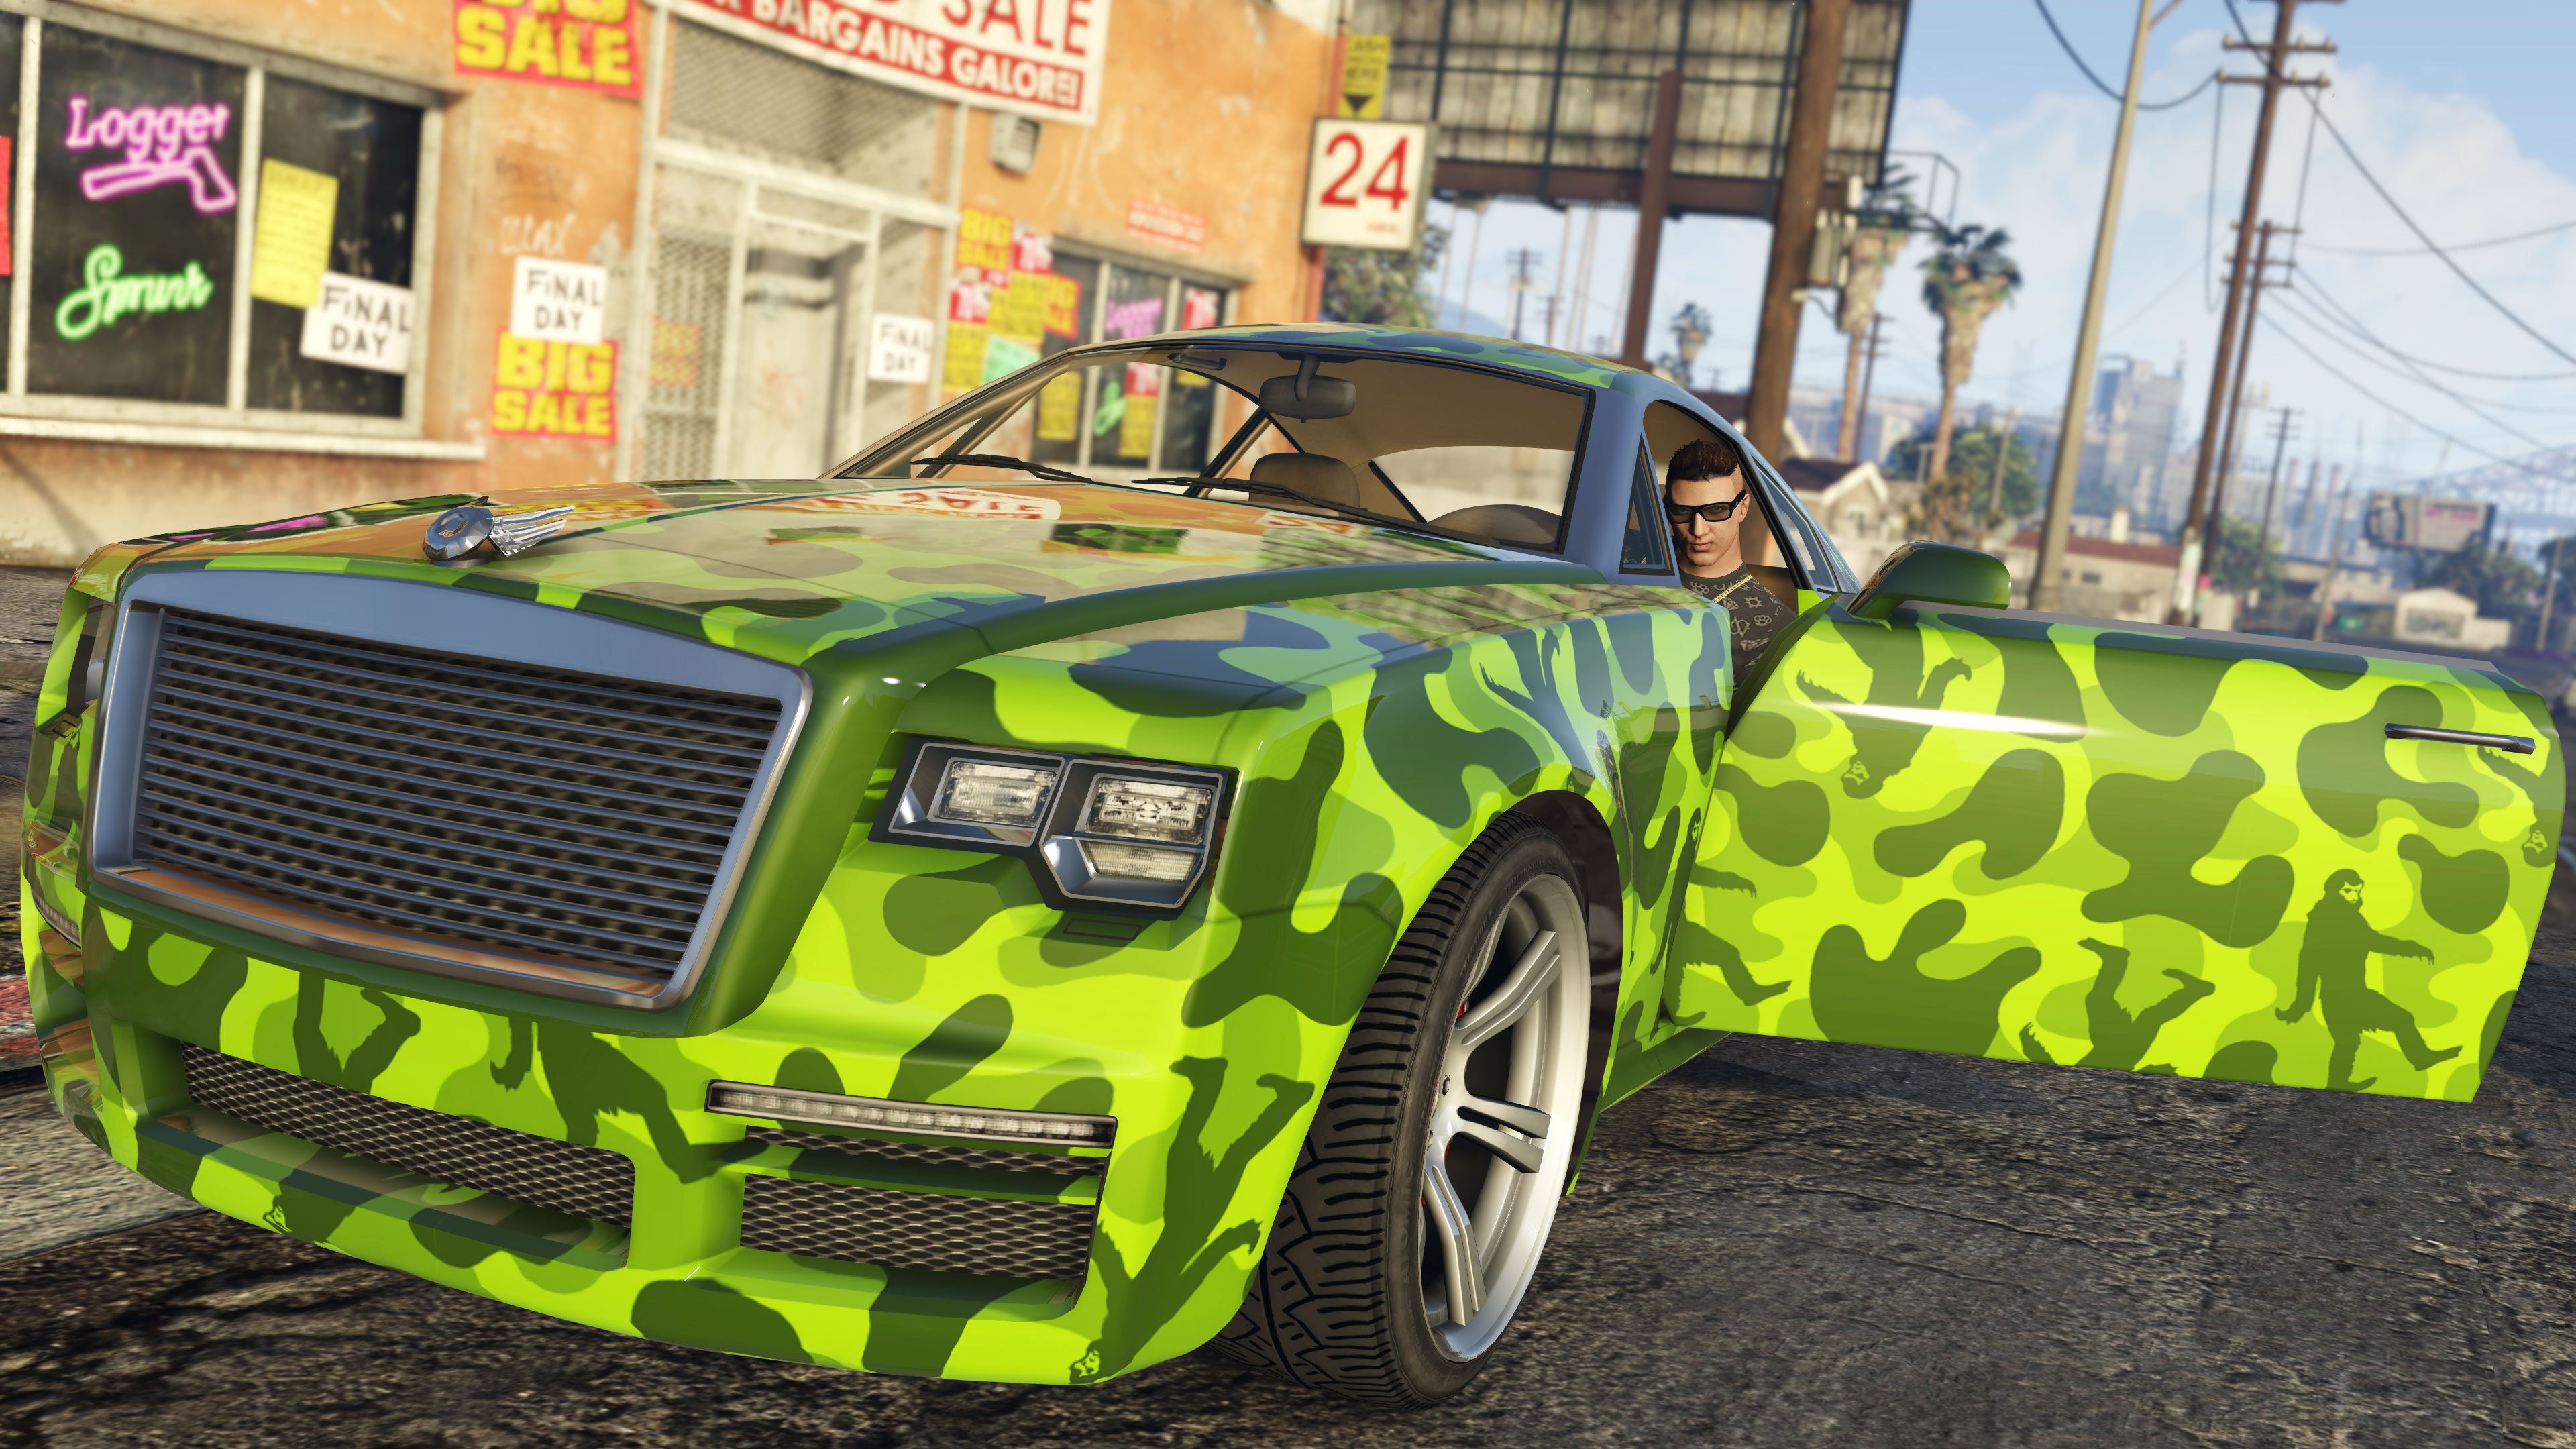 GTAV_PC_IGG1_012_FULL.jpg